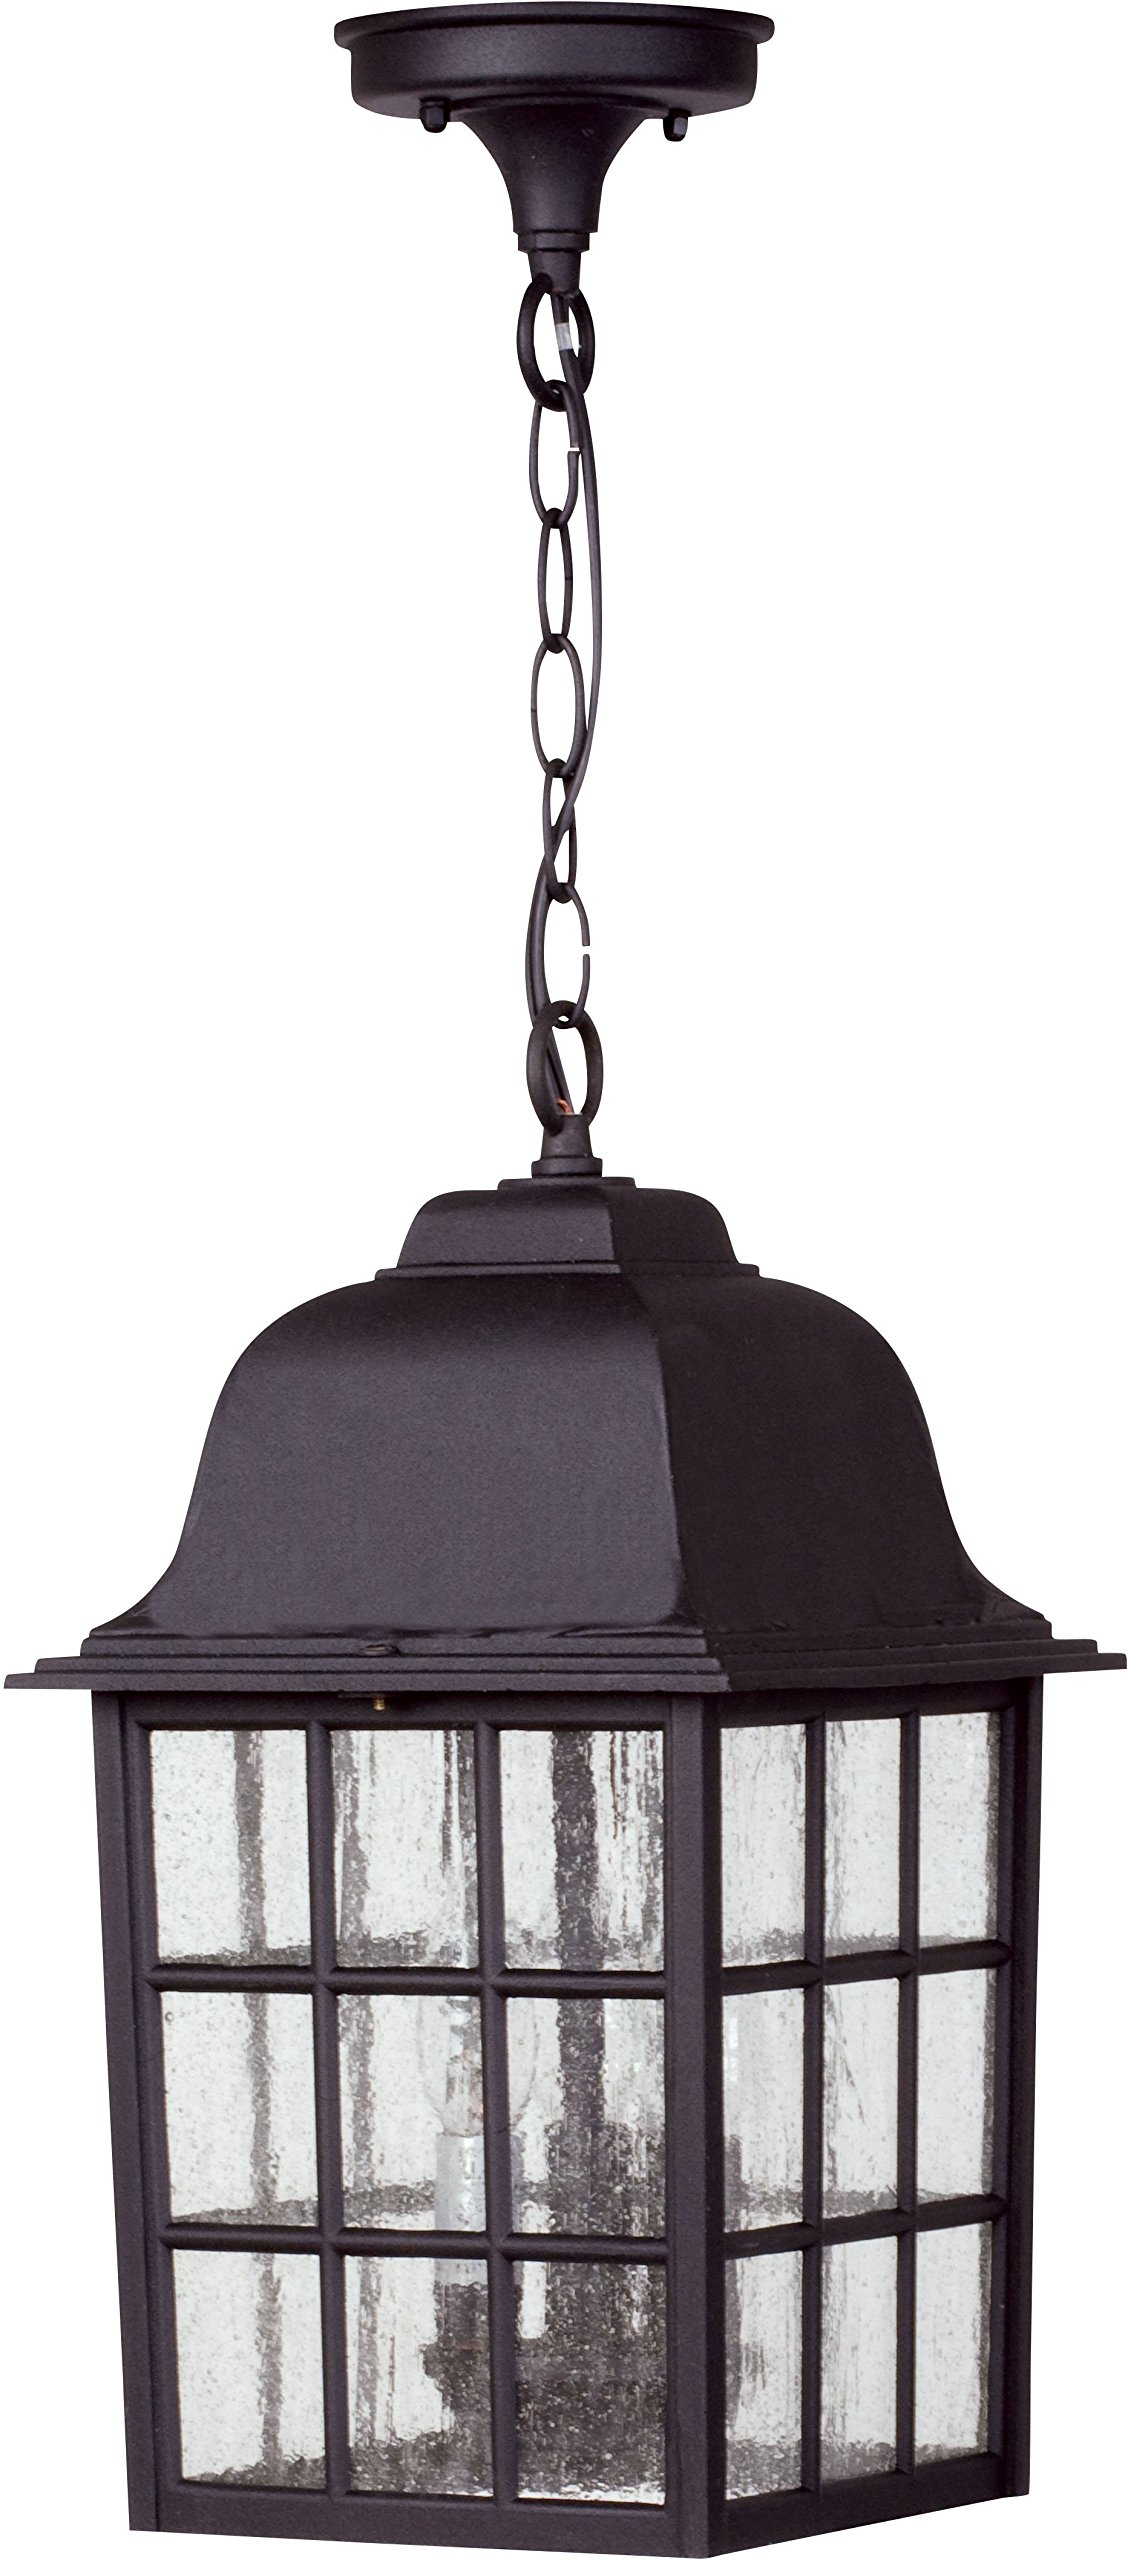 Craftmade Z571-05 Hanging Lanterns with Seeded Glass Shades, Black by Craftmade